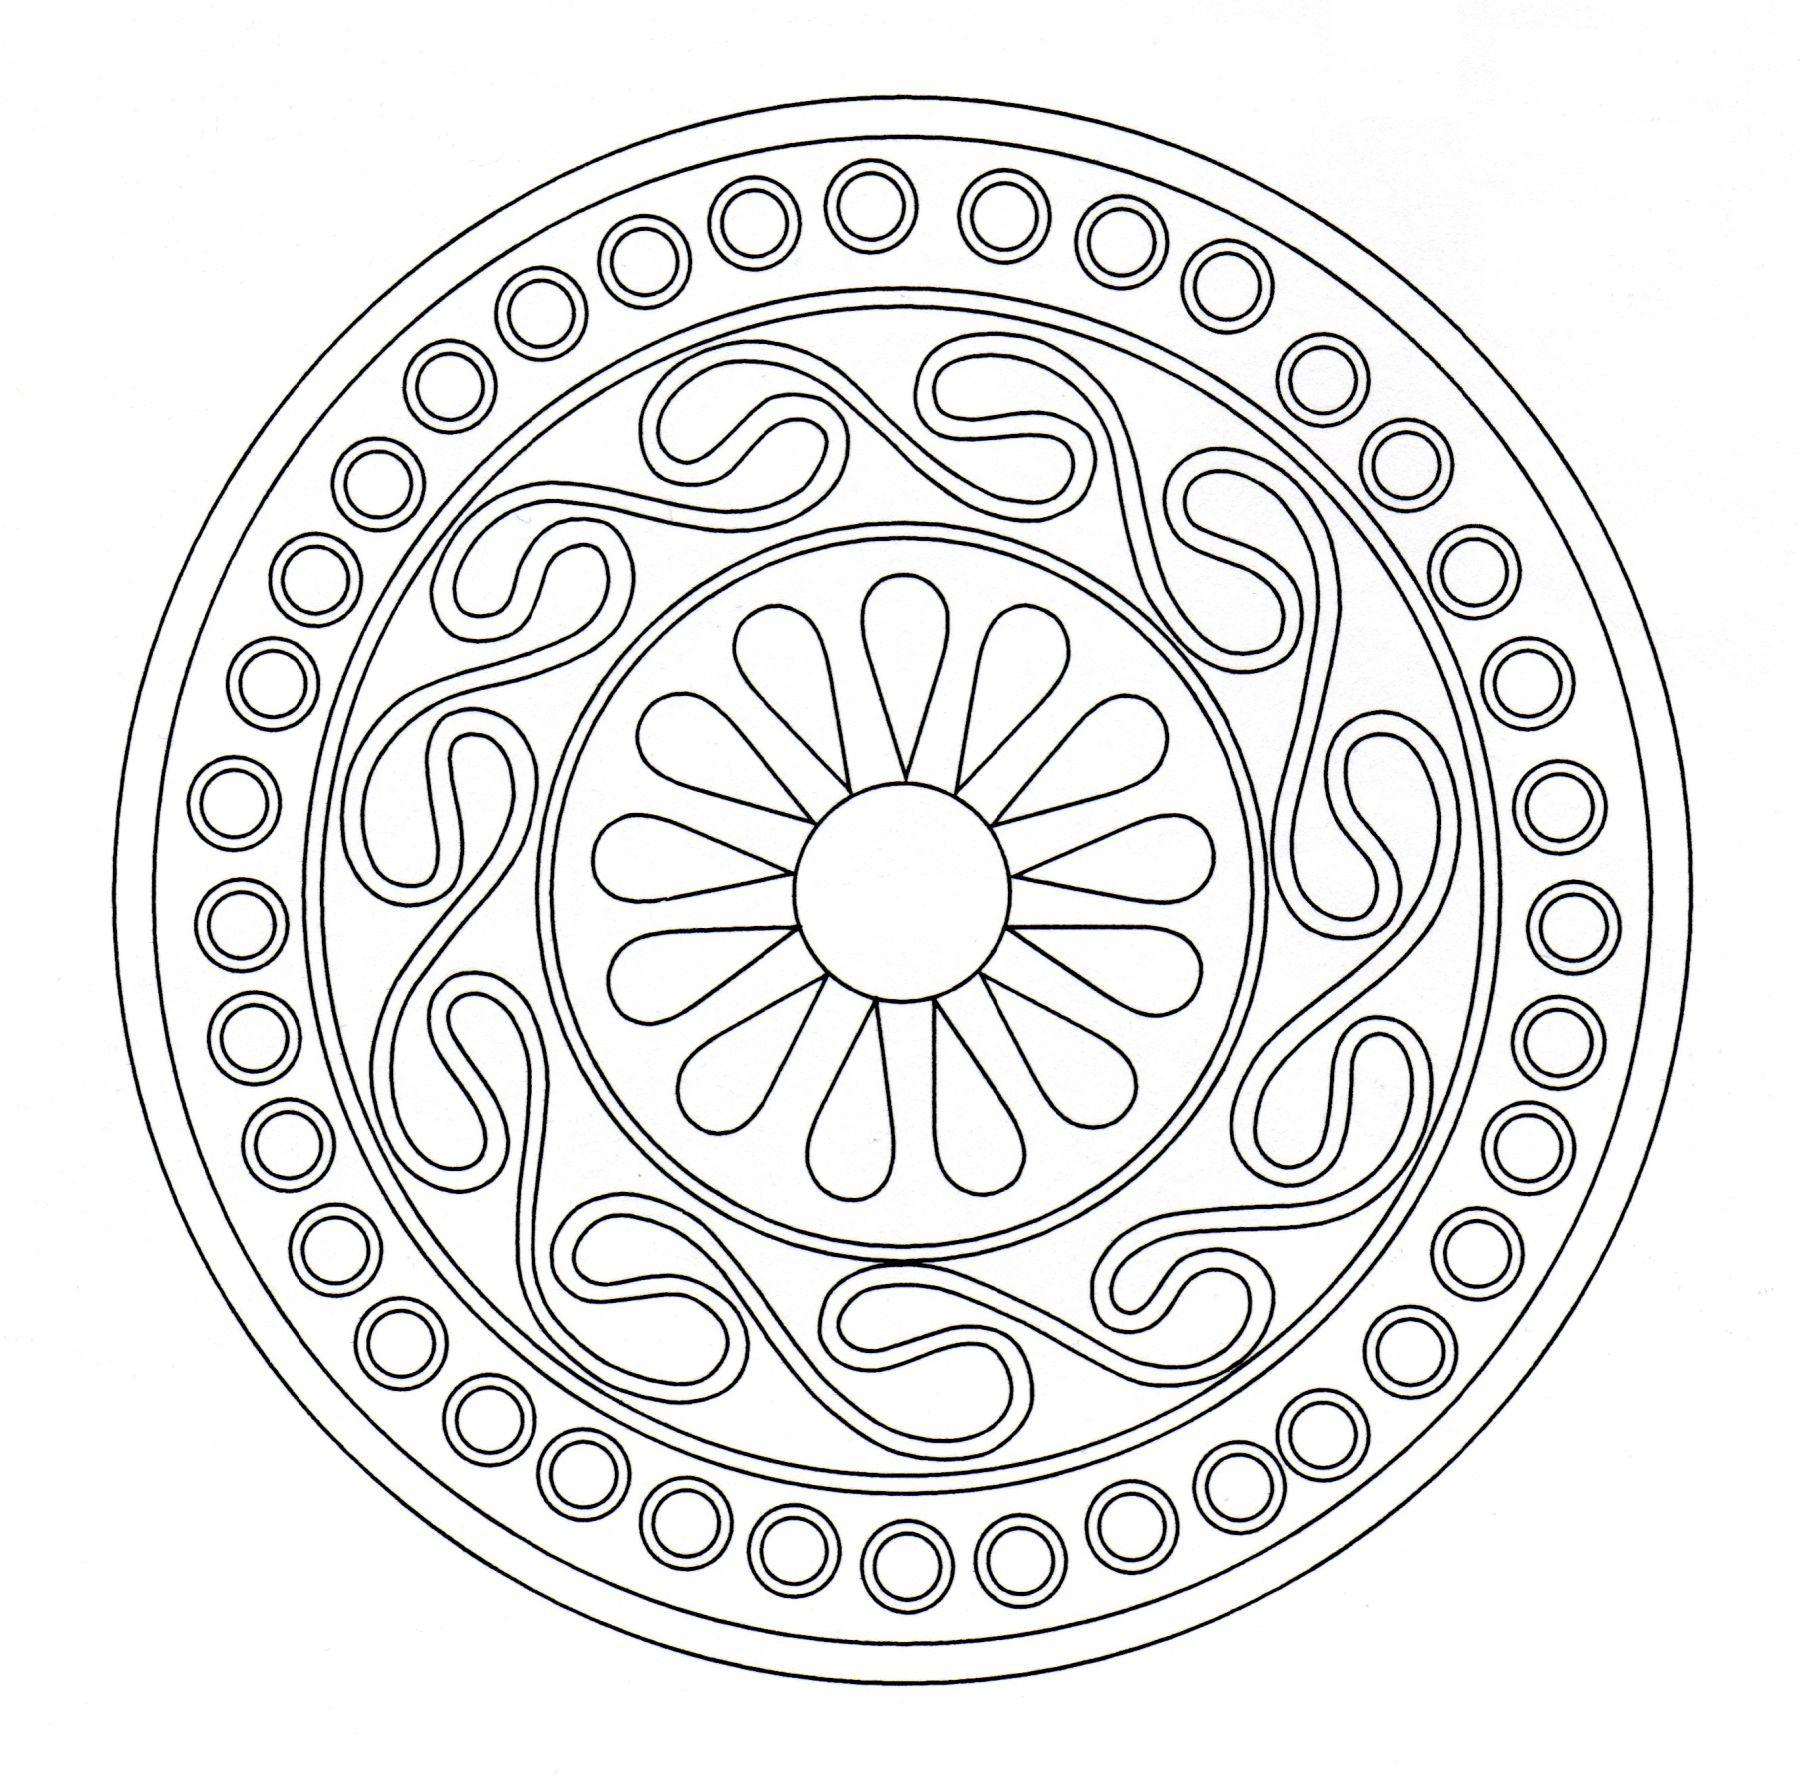 Mandala designs increase self-esteem and stimulate aesthetic sense. Discover it with this beautiful coloring page.